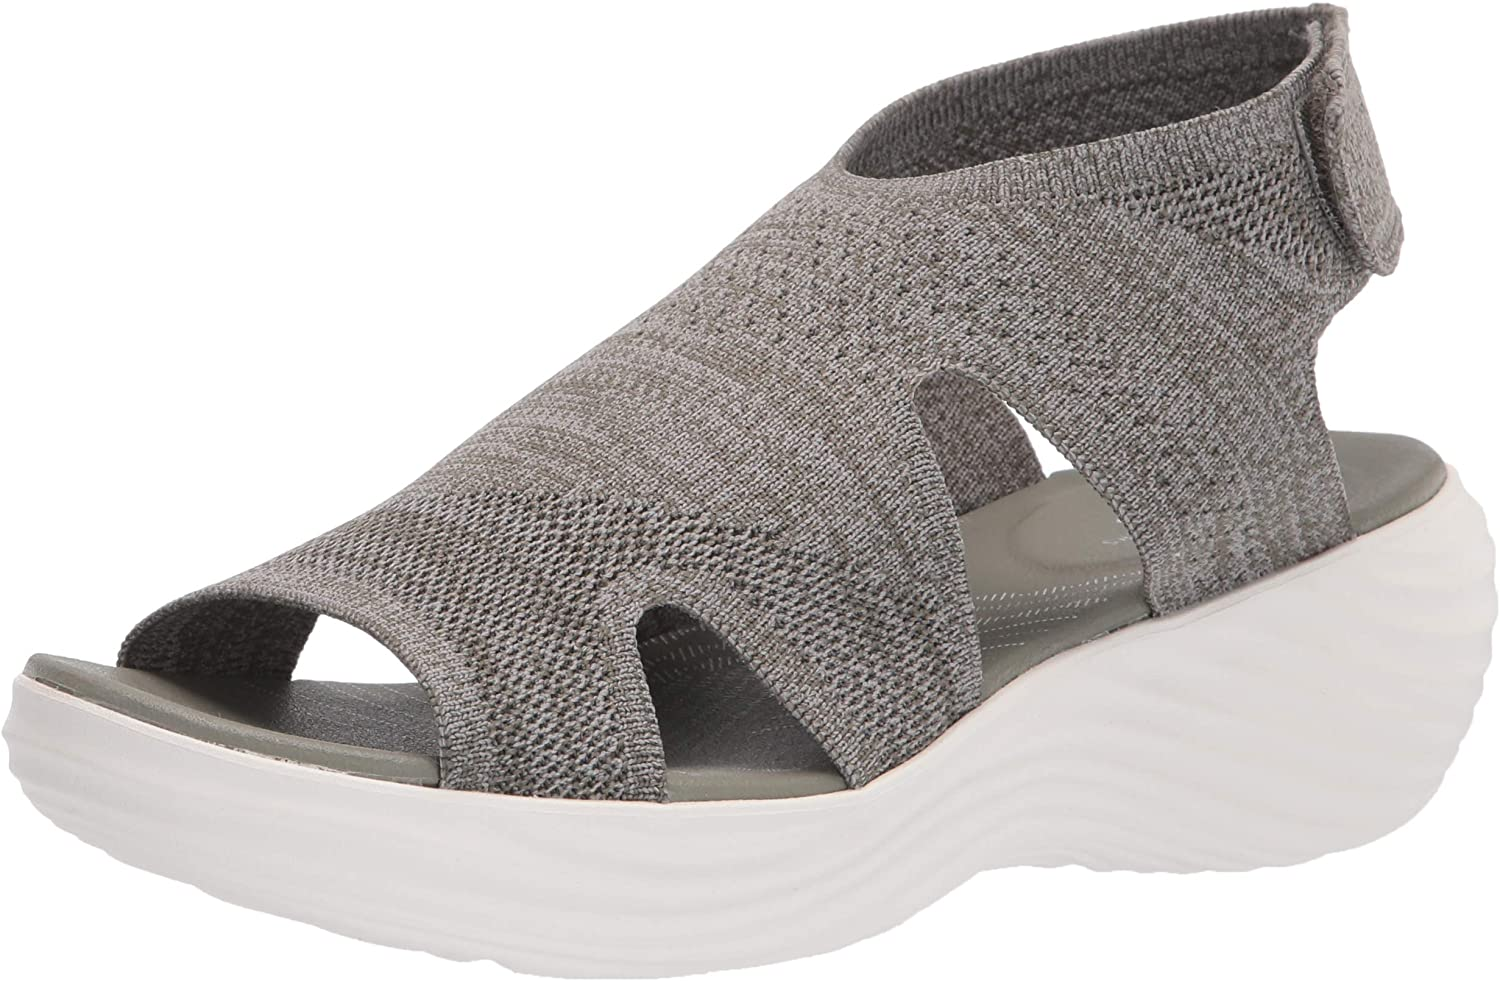 Clarks supreme Women's Marin Sandal Sail Fixed price for sale